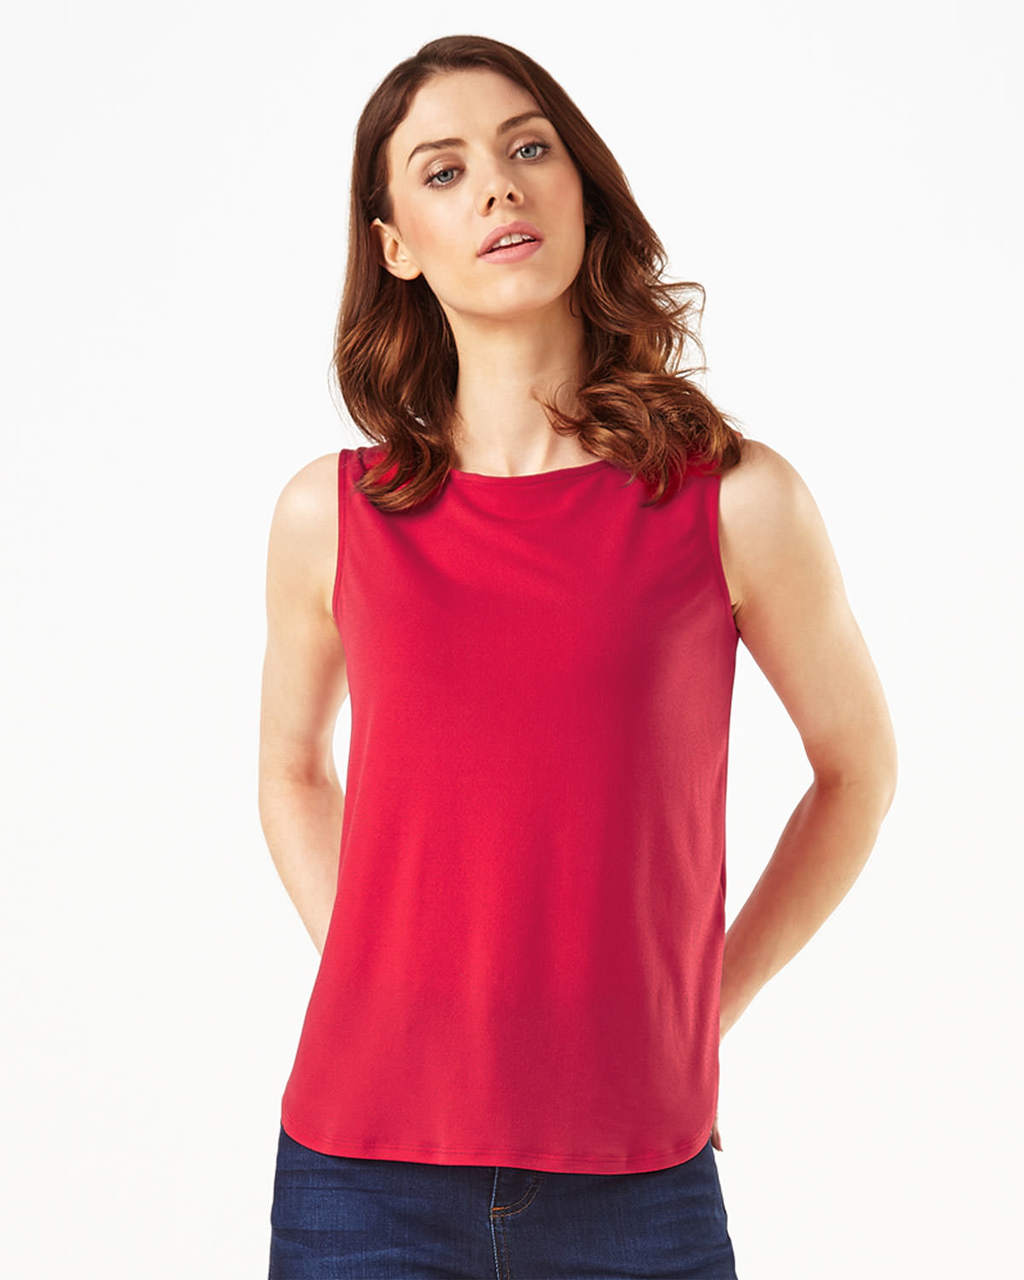 Charlotte Crepe Vest - pattern: plain; sleeve style: sleeveless; style: vest top; predominant colour: true red; occasions: casual; length: standard; fibres: polyester/polyamide - stretch; fit: body skimming; neckline: crew; sleeve length: sleeveless; texture group: crepes; pattern type: fabric; season: s/s 2016; wardrobe: highlight